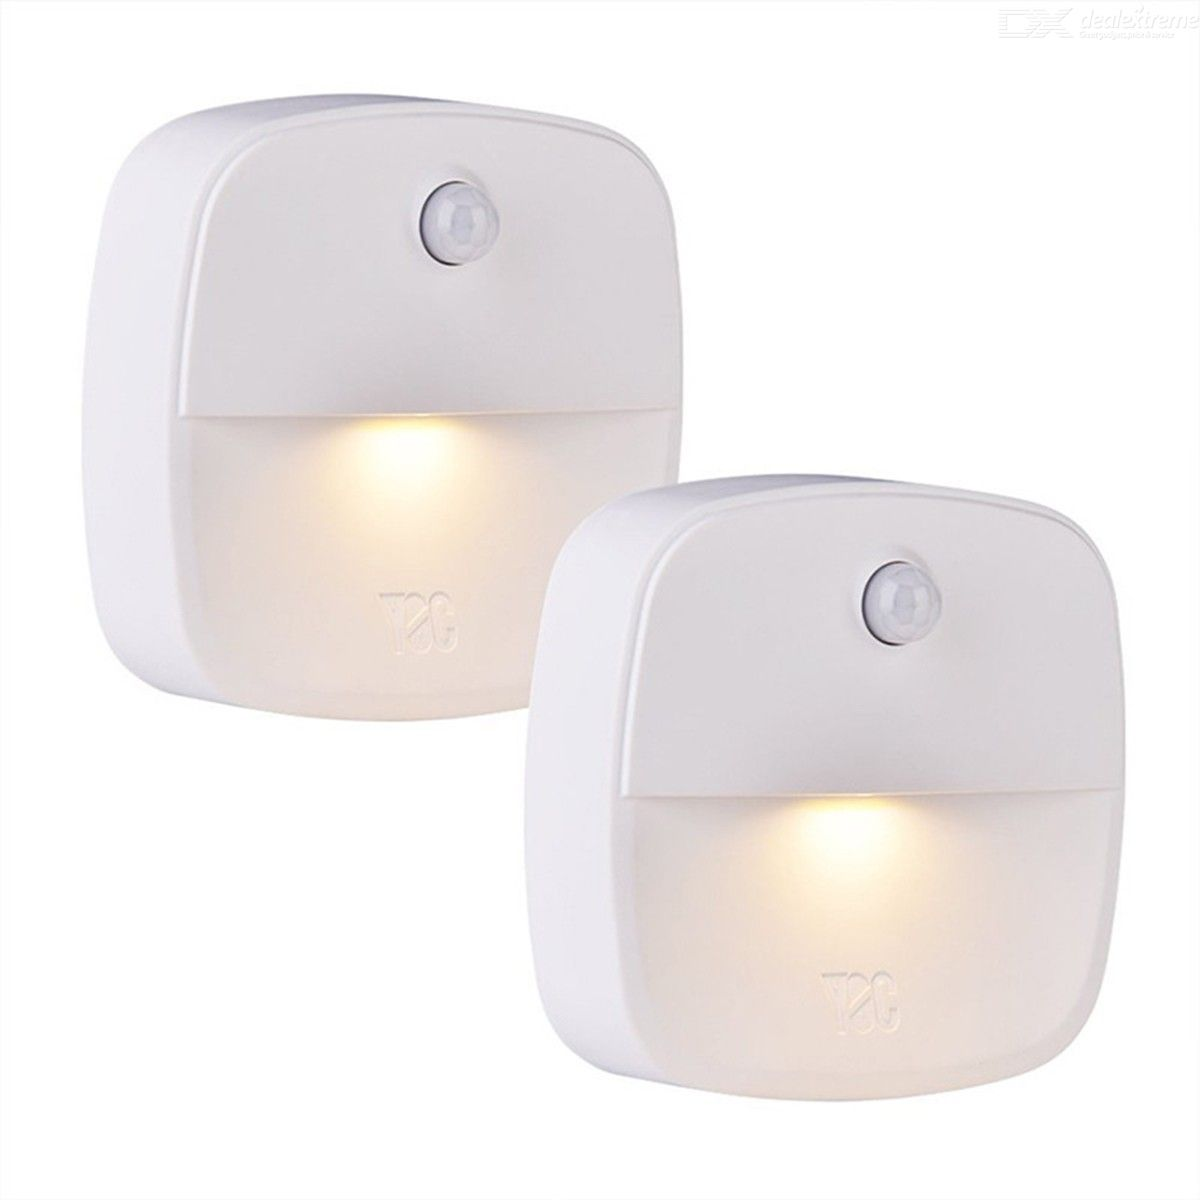 Other Lighting And Lamps 2pcs Motion Sensor Lights